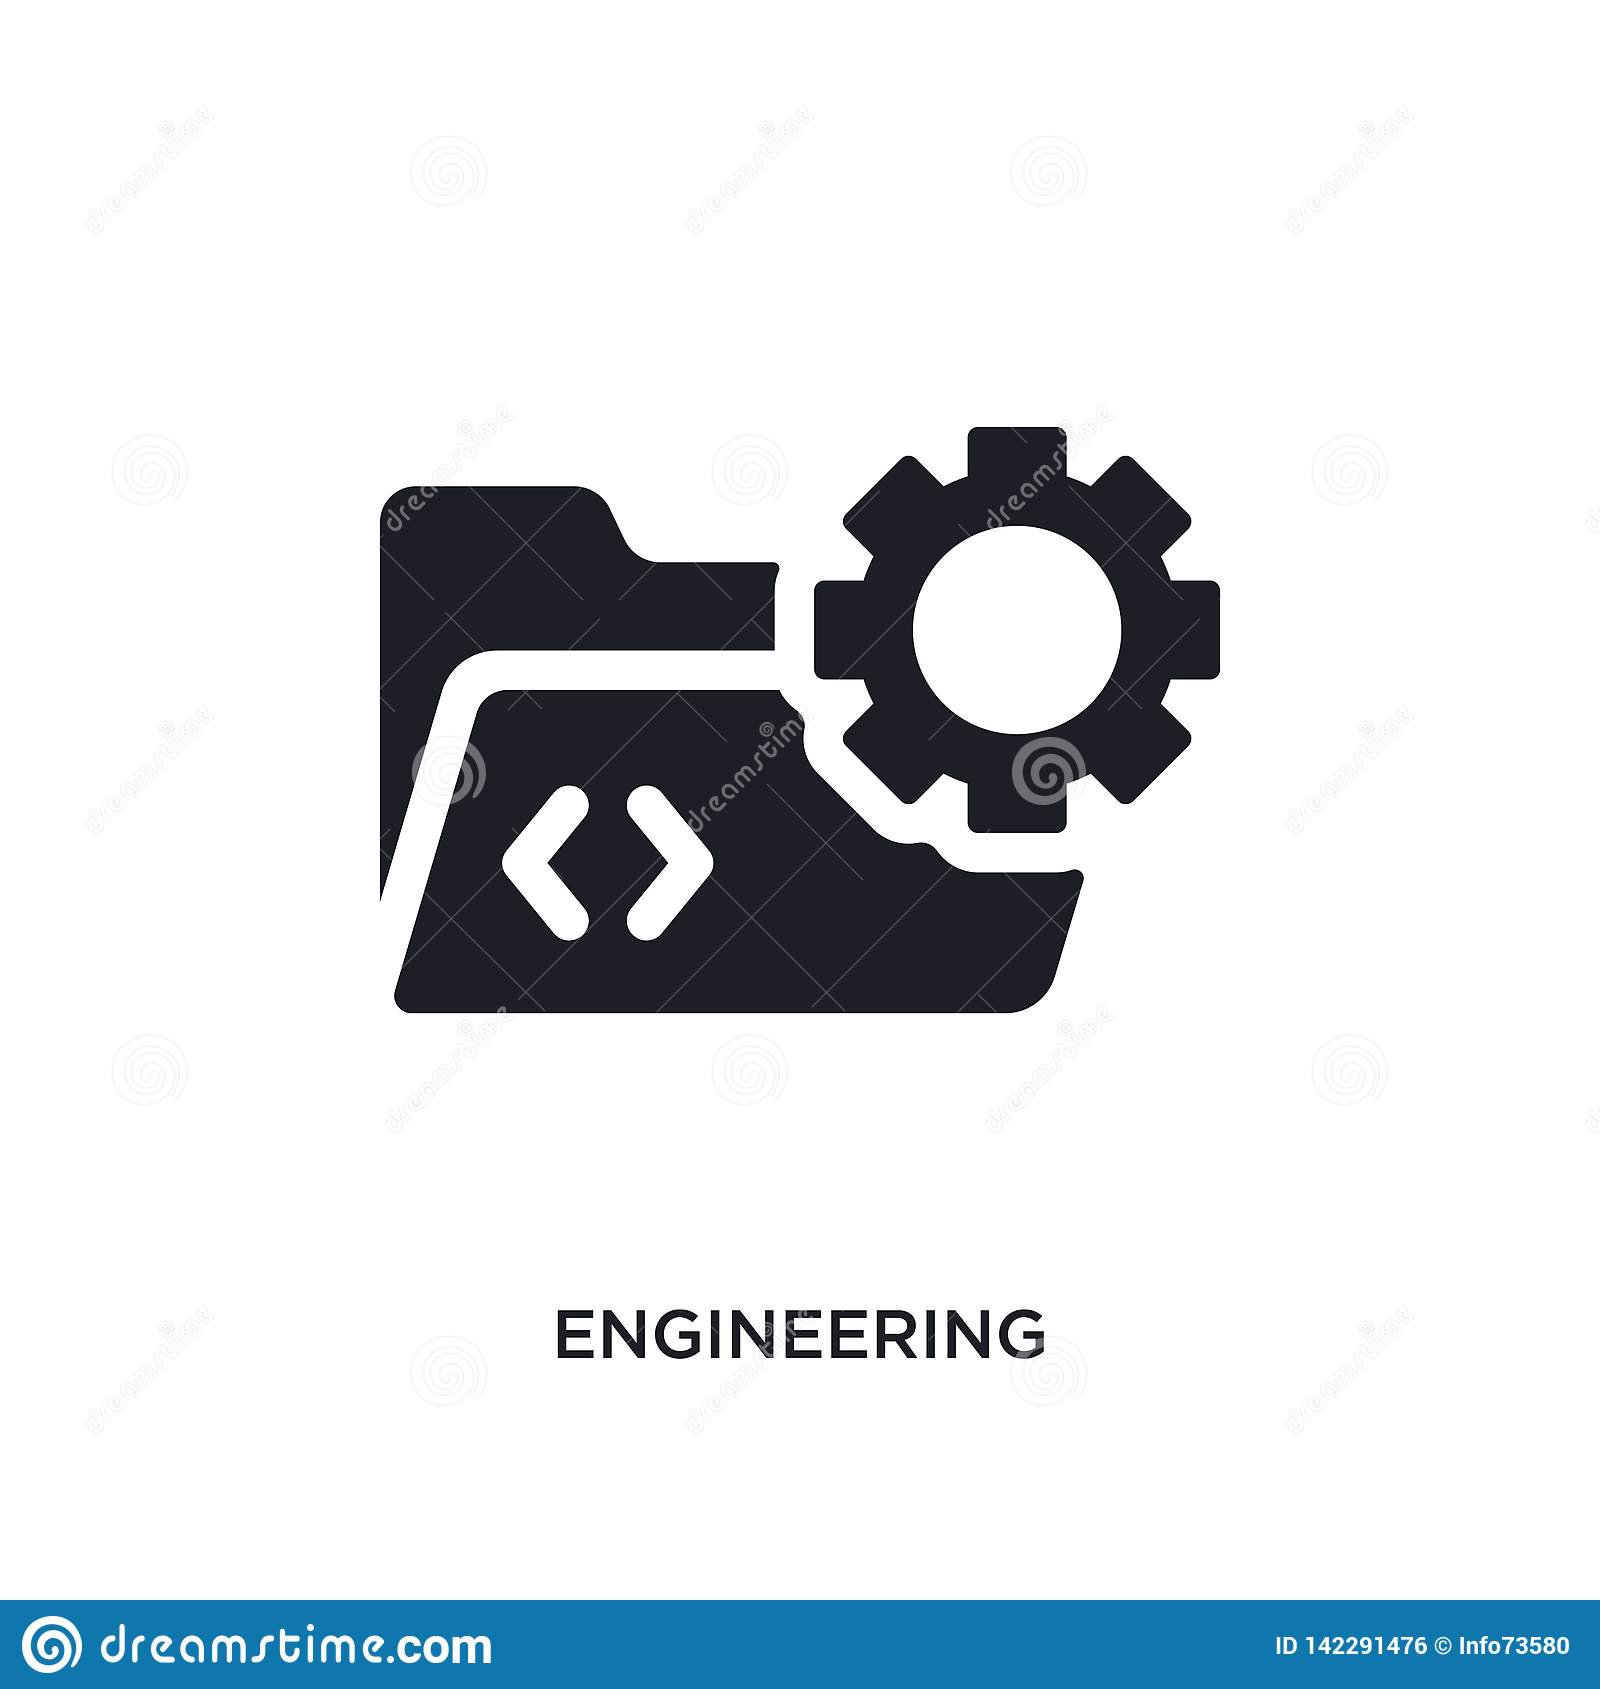 engineering isolated icon. simple element illustration from programming concept icons. engineering editable logo sign symbol